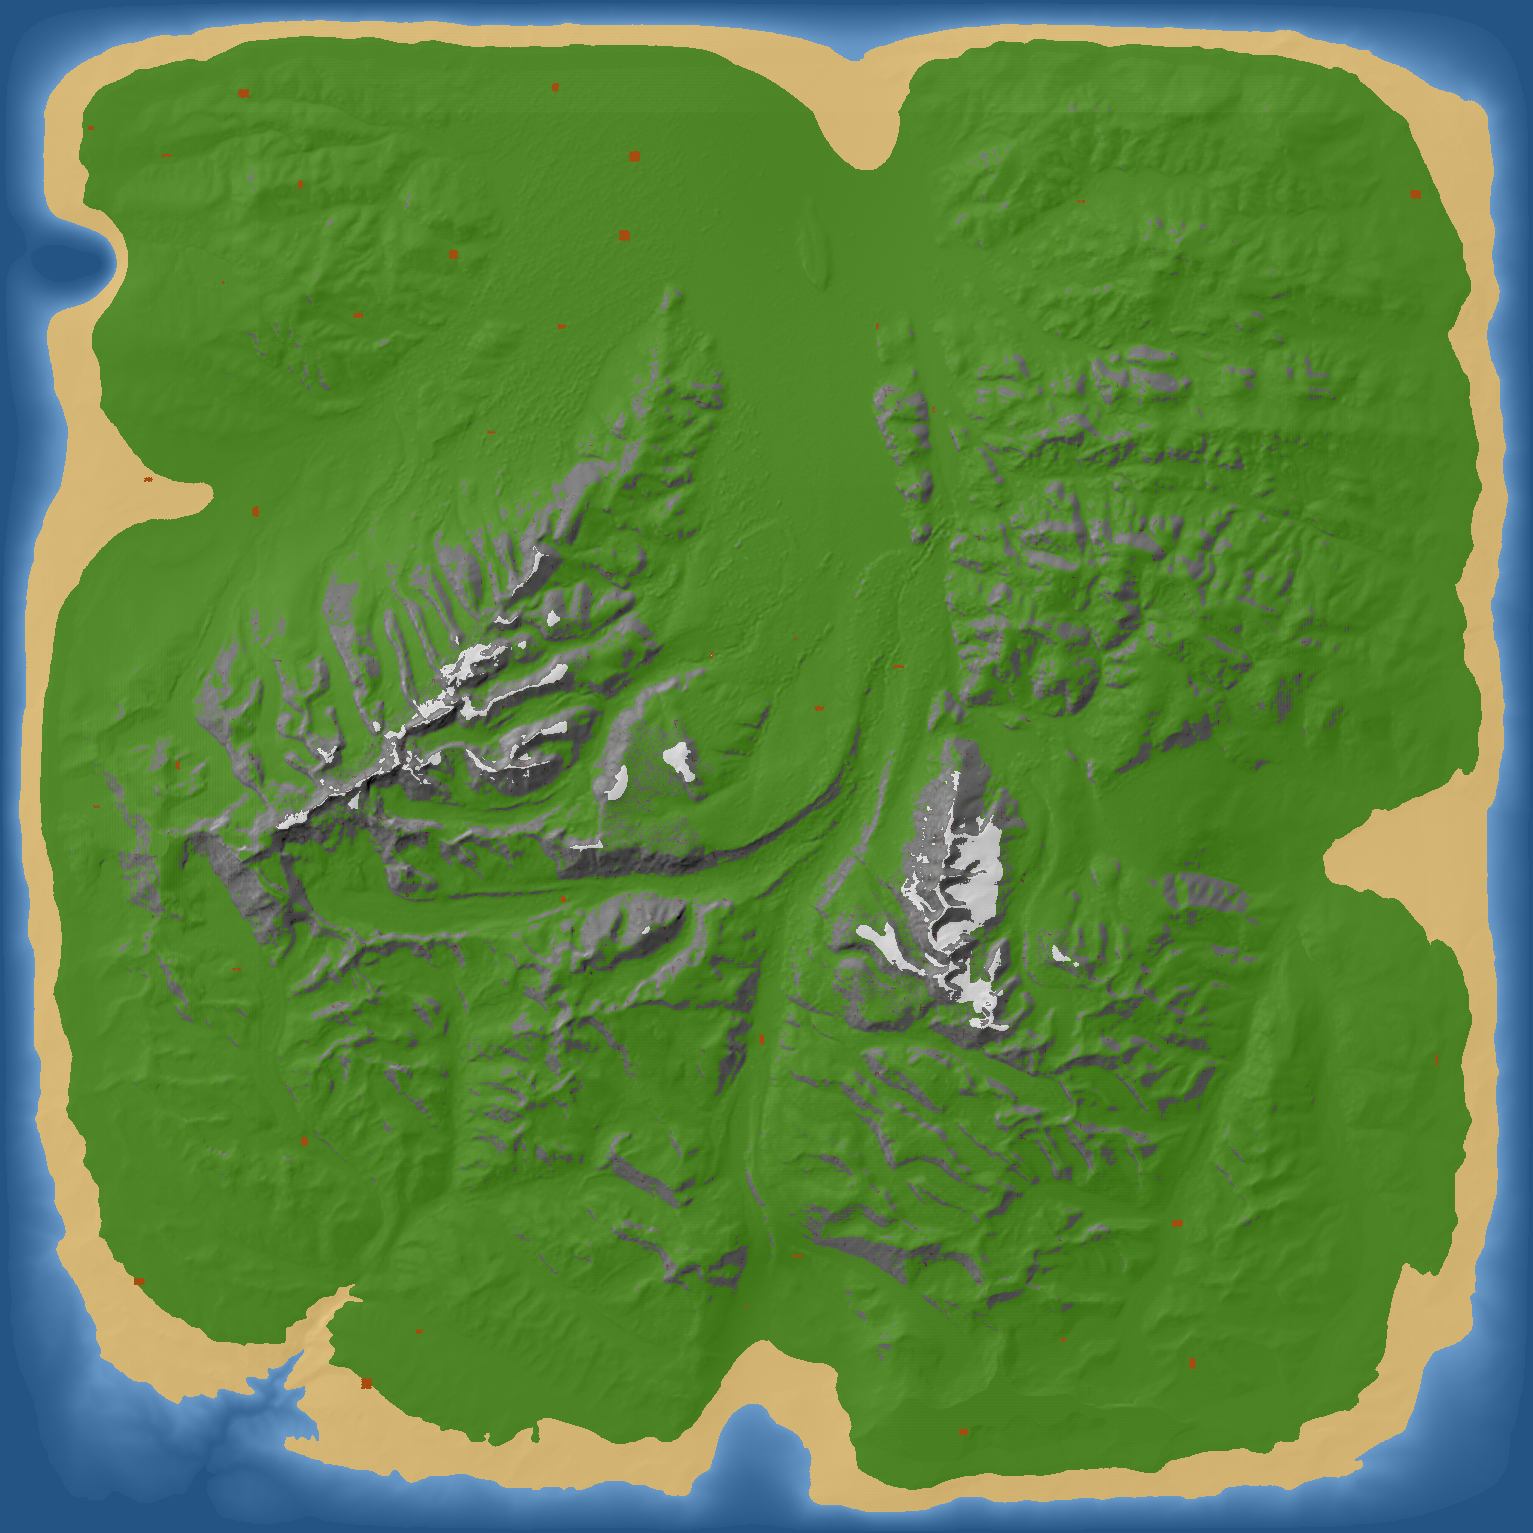 LiF:YO Custom Maps Incoming! – Nyuton.net on feudal system middle ages map, feudal japan map, torchlight 2 map, middle ages western europe map, ultima online map, ancient byzantine empire map, christendom middle ages map, sark channel islands map, russian states map, runes of magic map, 1500 s a roman expansion map, medieval village map, feudal system europe map, spain resource map, european middle ages land use map, archeage map, feudal manor map, fallen earth map, medieval manor map, ancient roman world map,